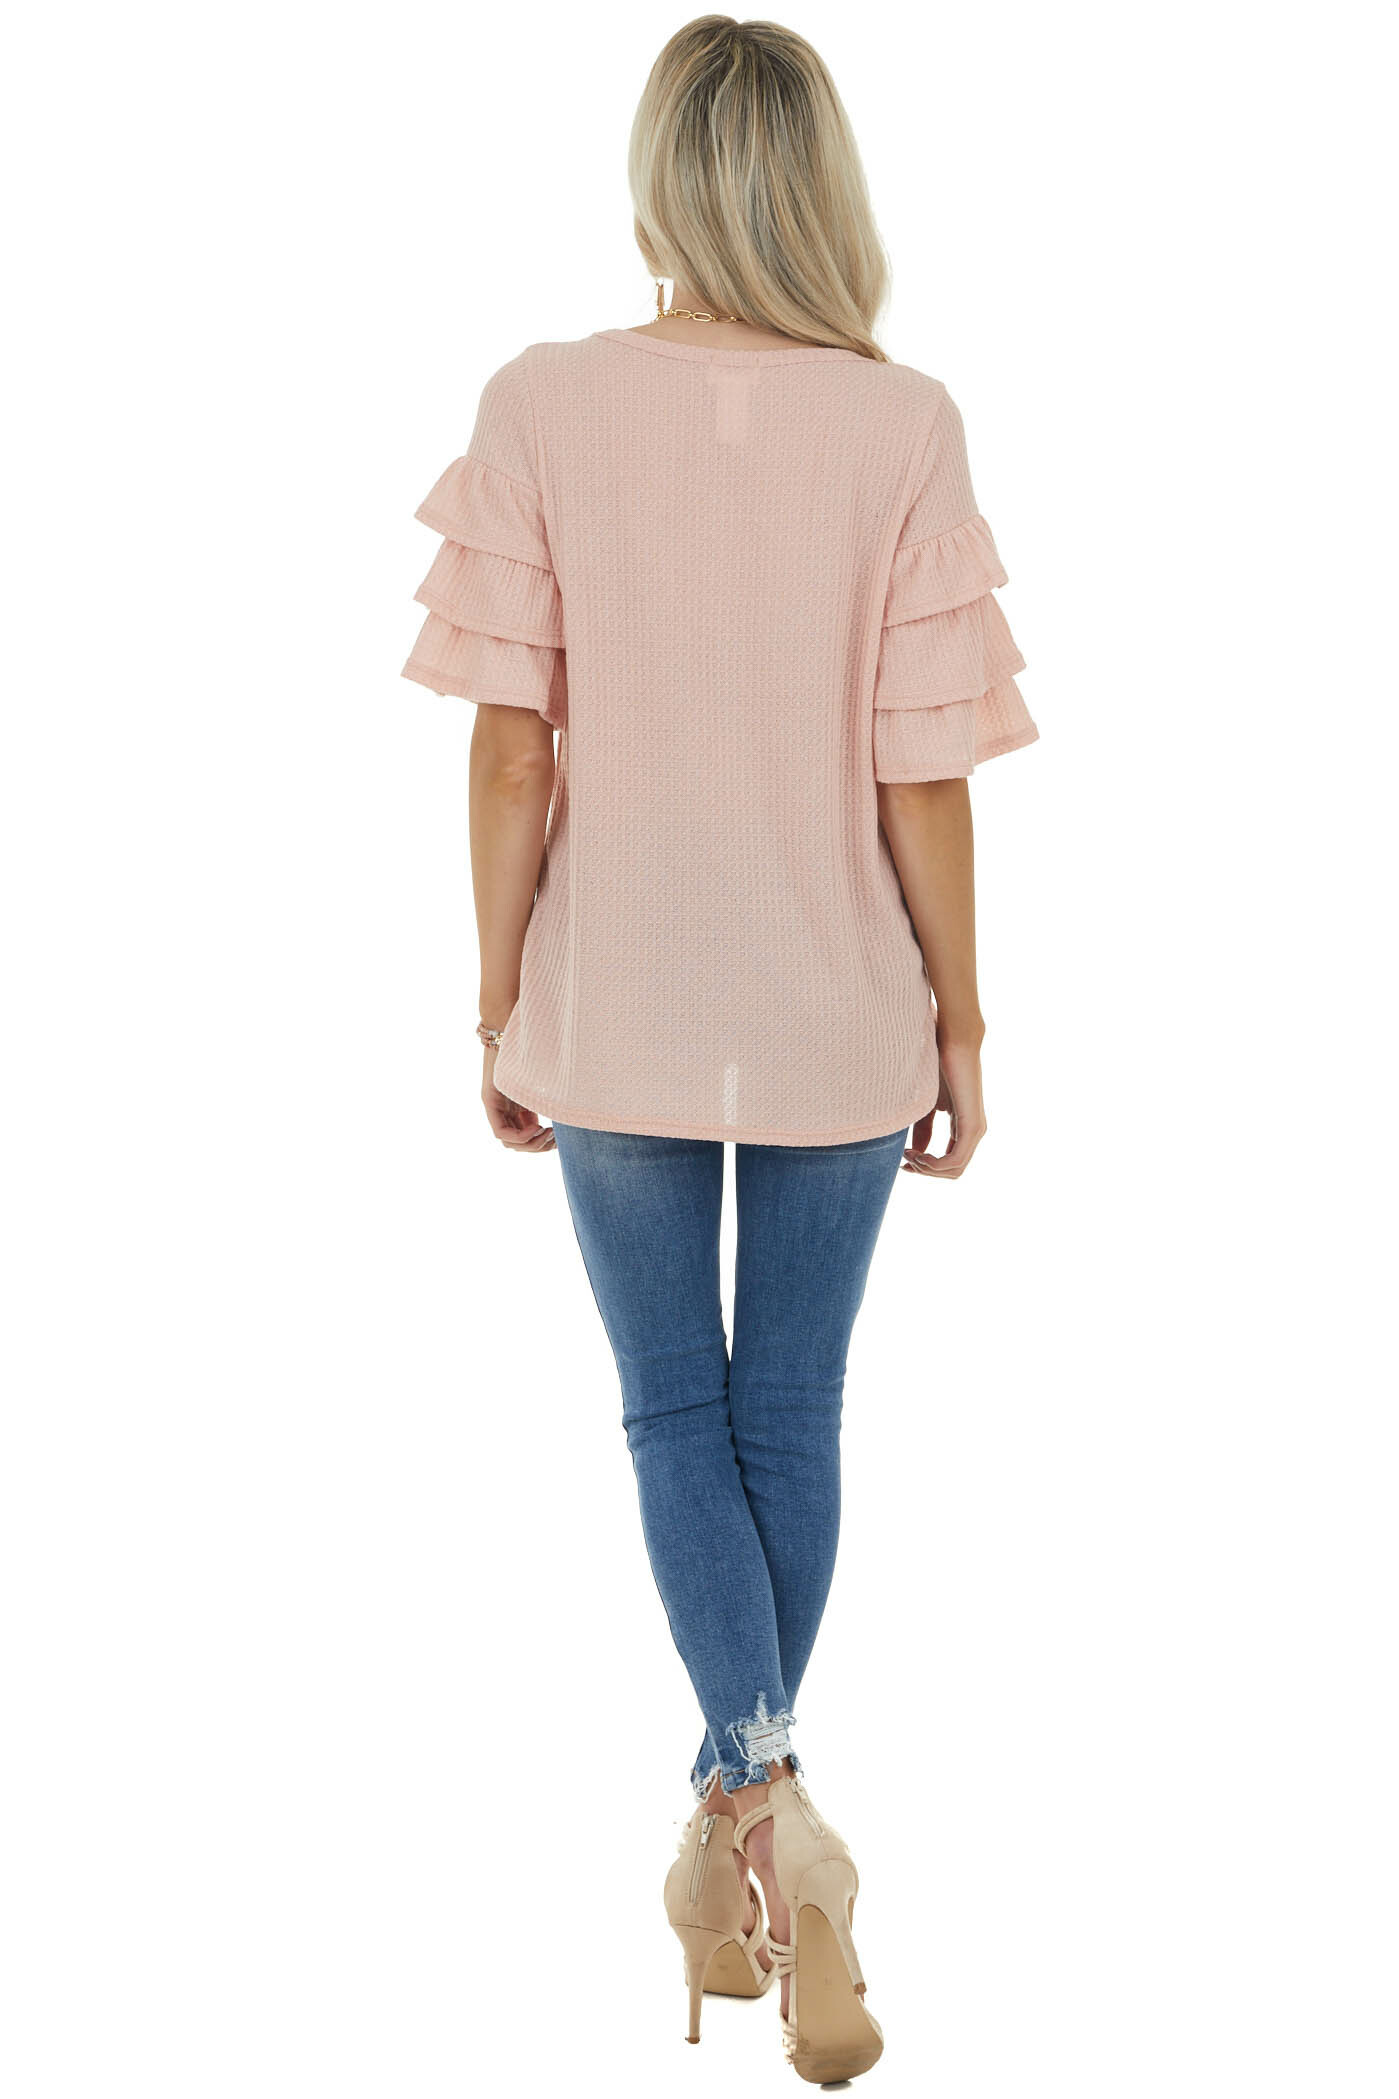 Peach Half Sleeve Waffle Knit with Flare Details